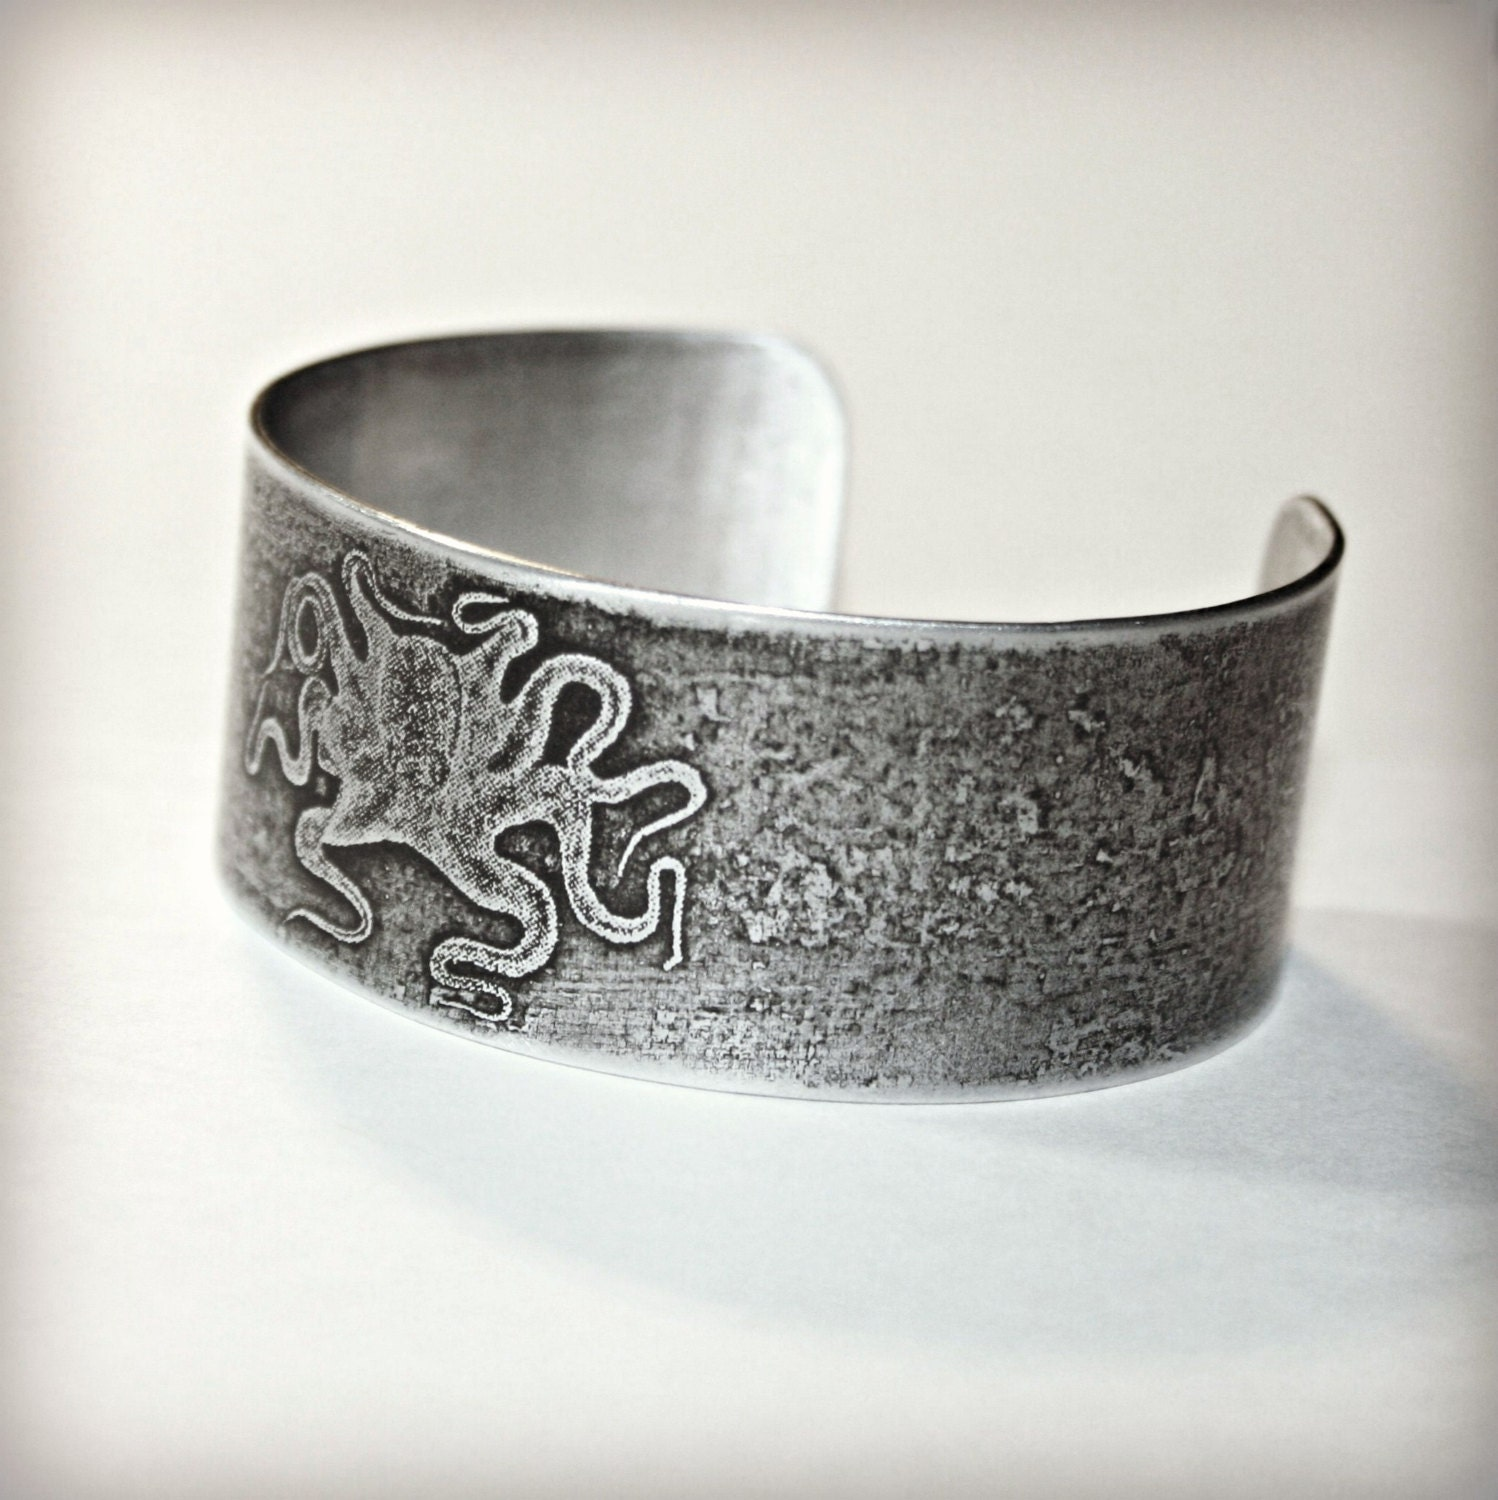 Aluminum Cuff Bracelet - Etched with Squid / Octopus Design - Can Be Personalized - hardweardesigns